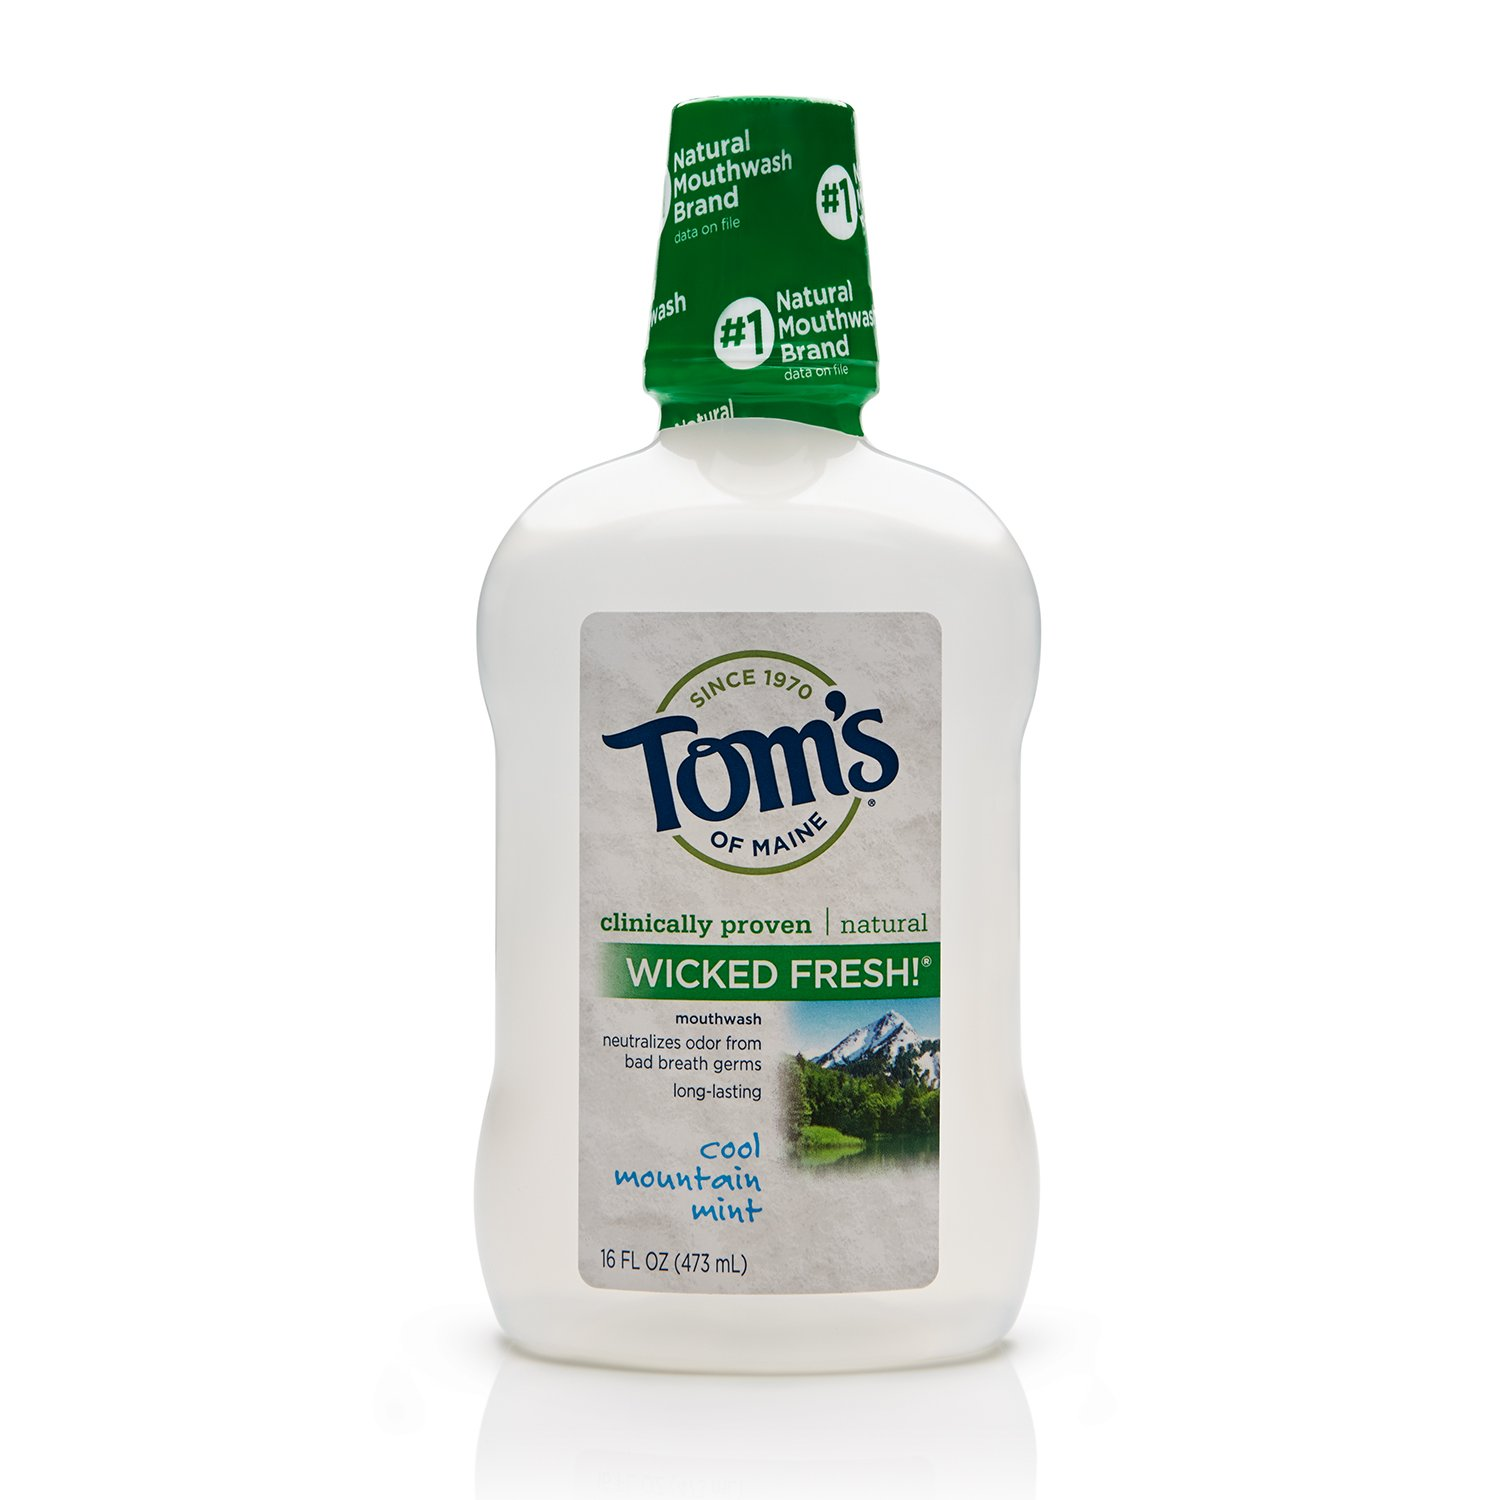 Tom's of Maine 683616 Long Lasting Wicked Fresh Mouth Wash, Cool Mountain Mint, 16 Ounce,24 Count